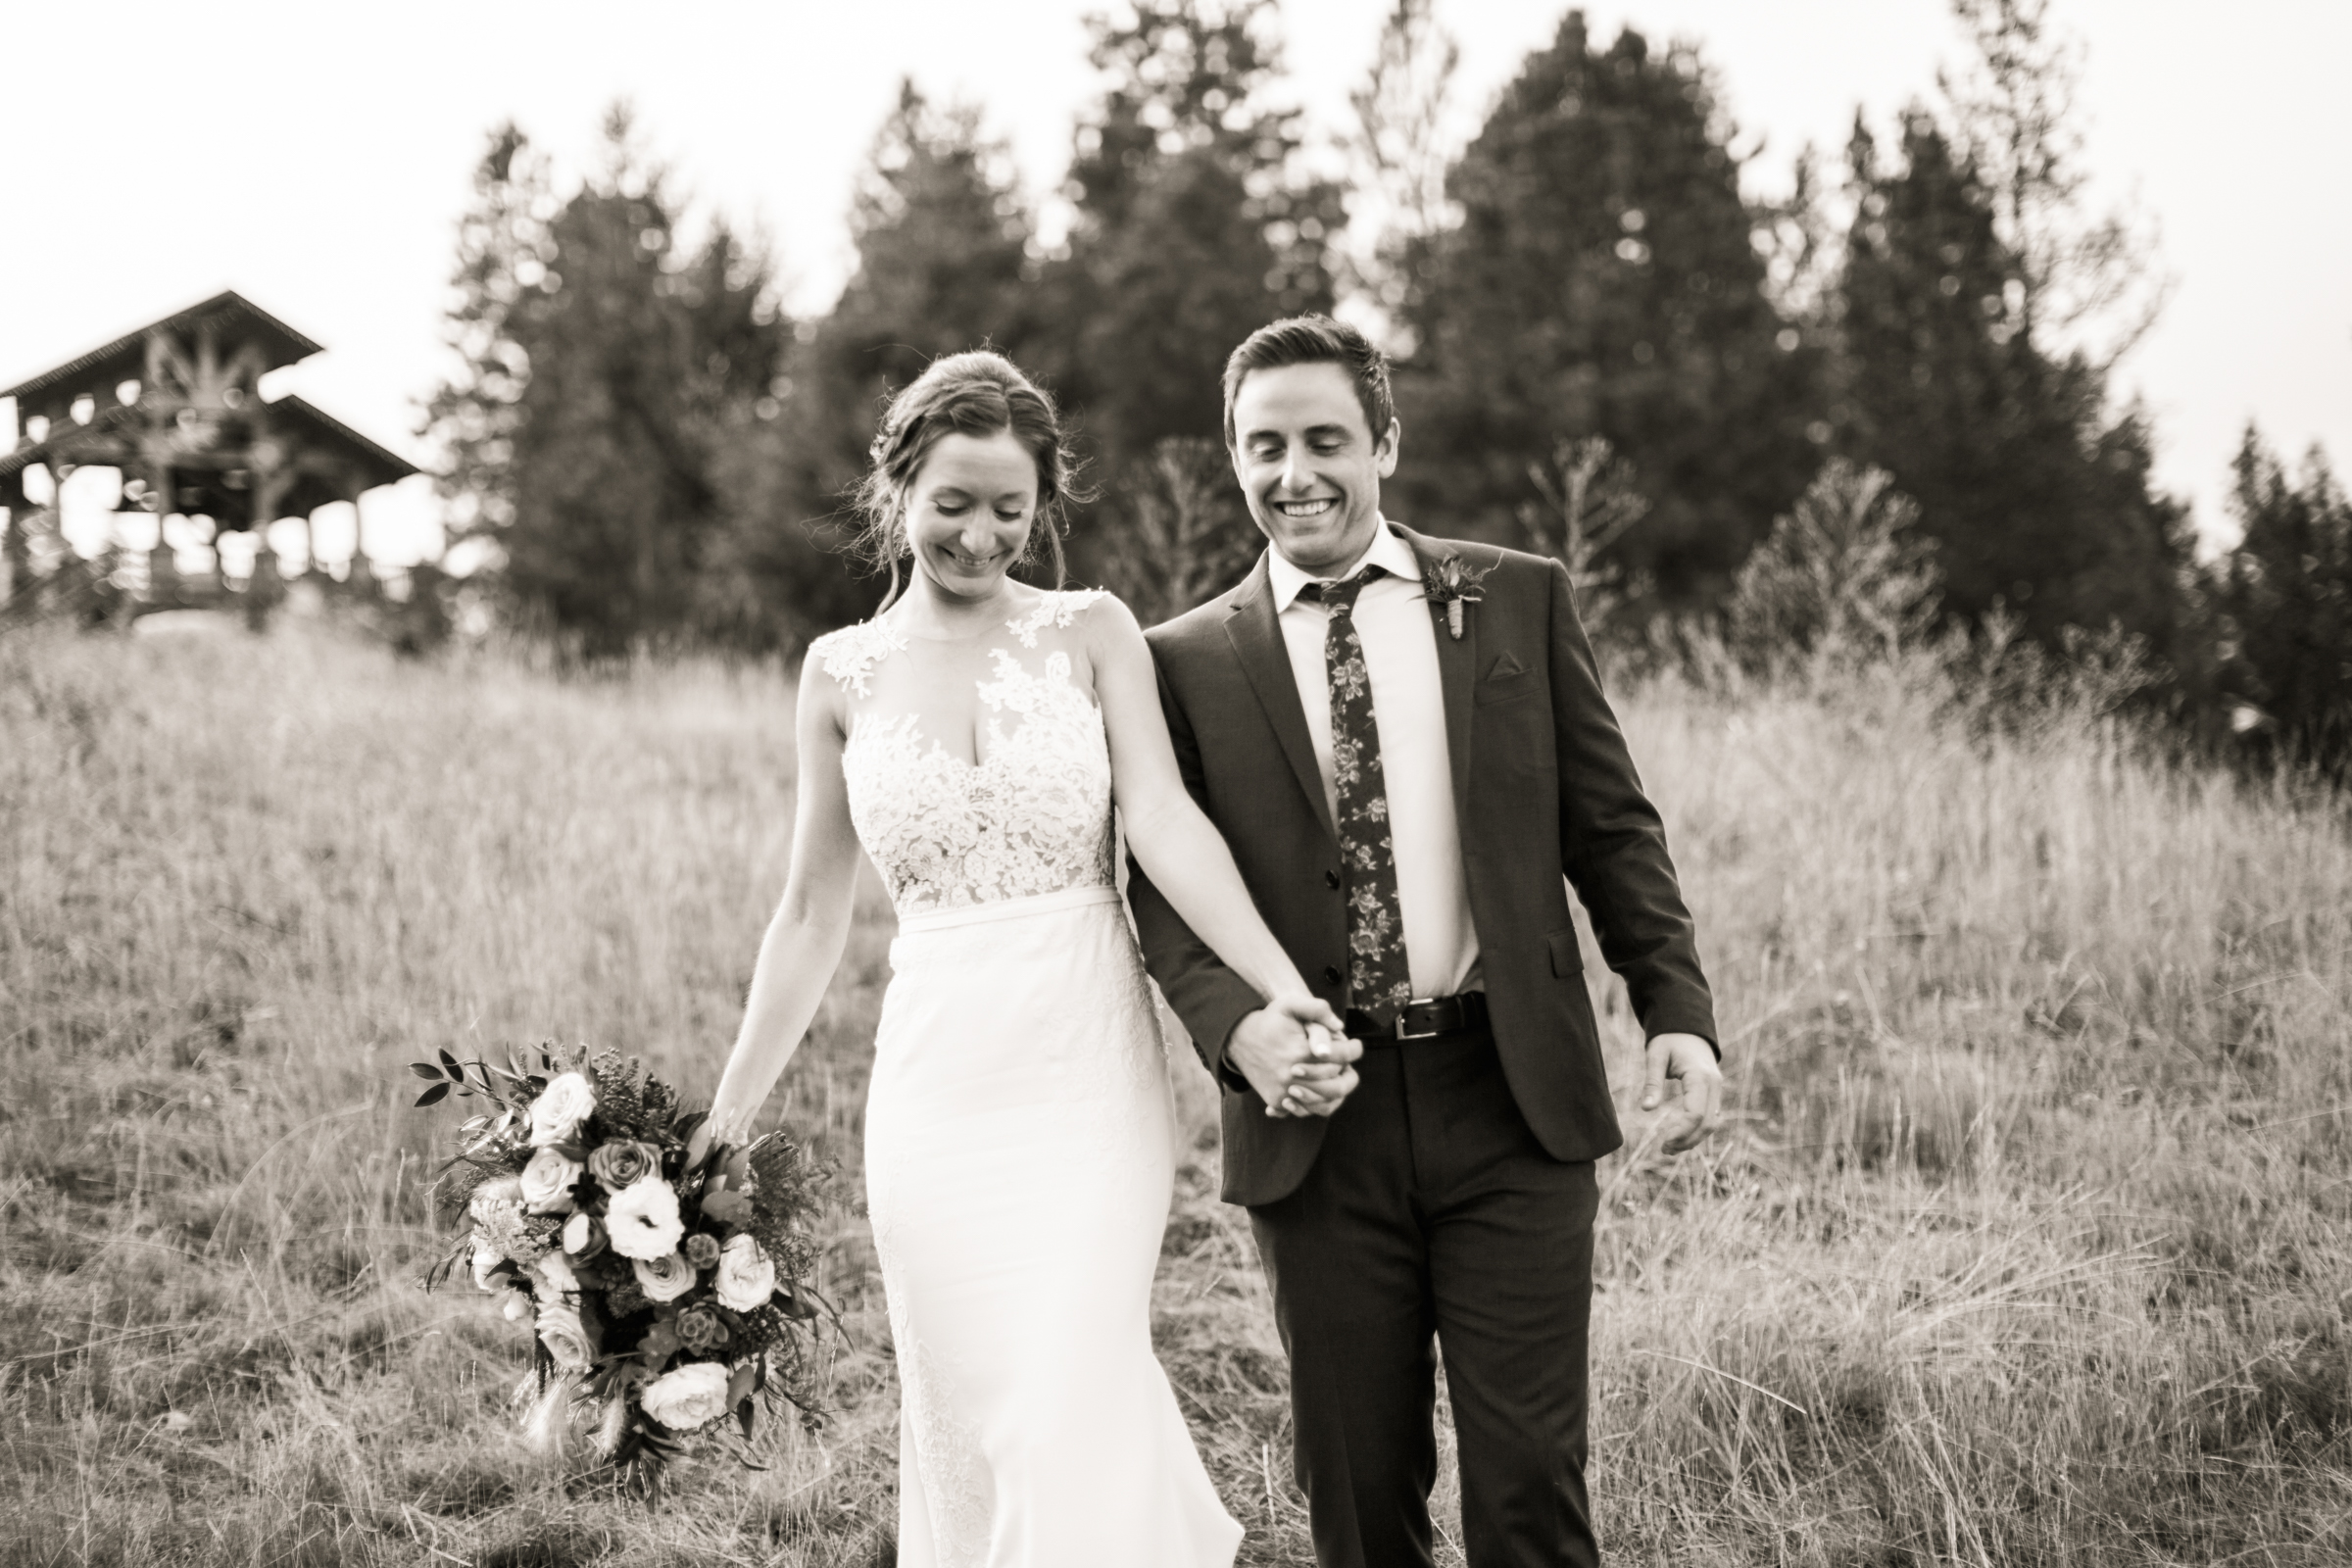 Bride with lace bodice sheath gown holds her grooms hand - photo by Stephanie Cristalli Photography